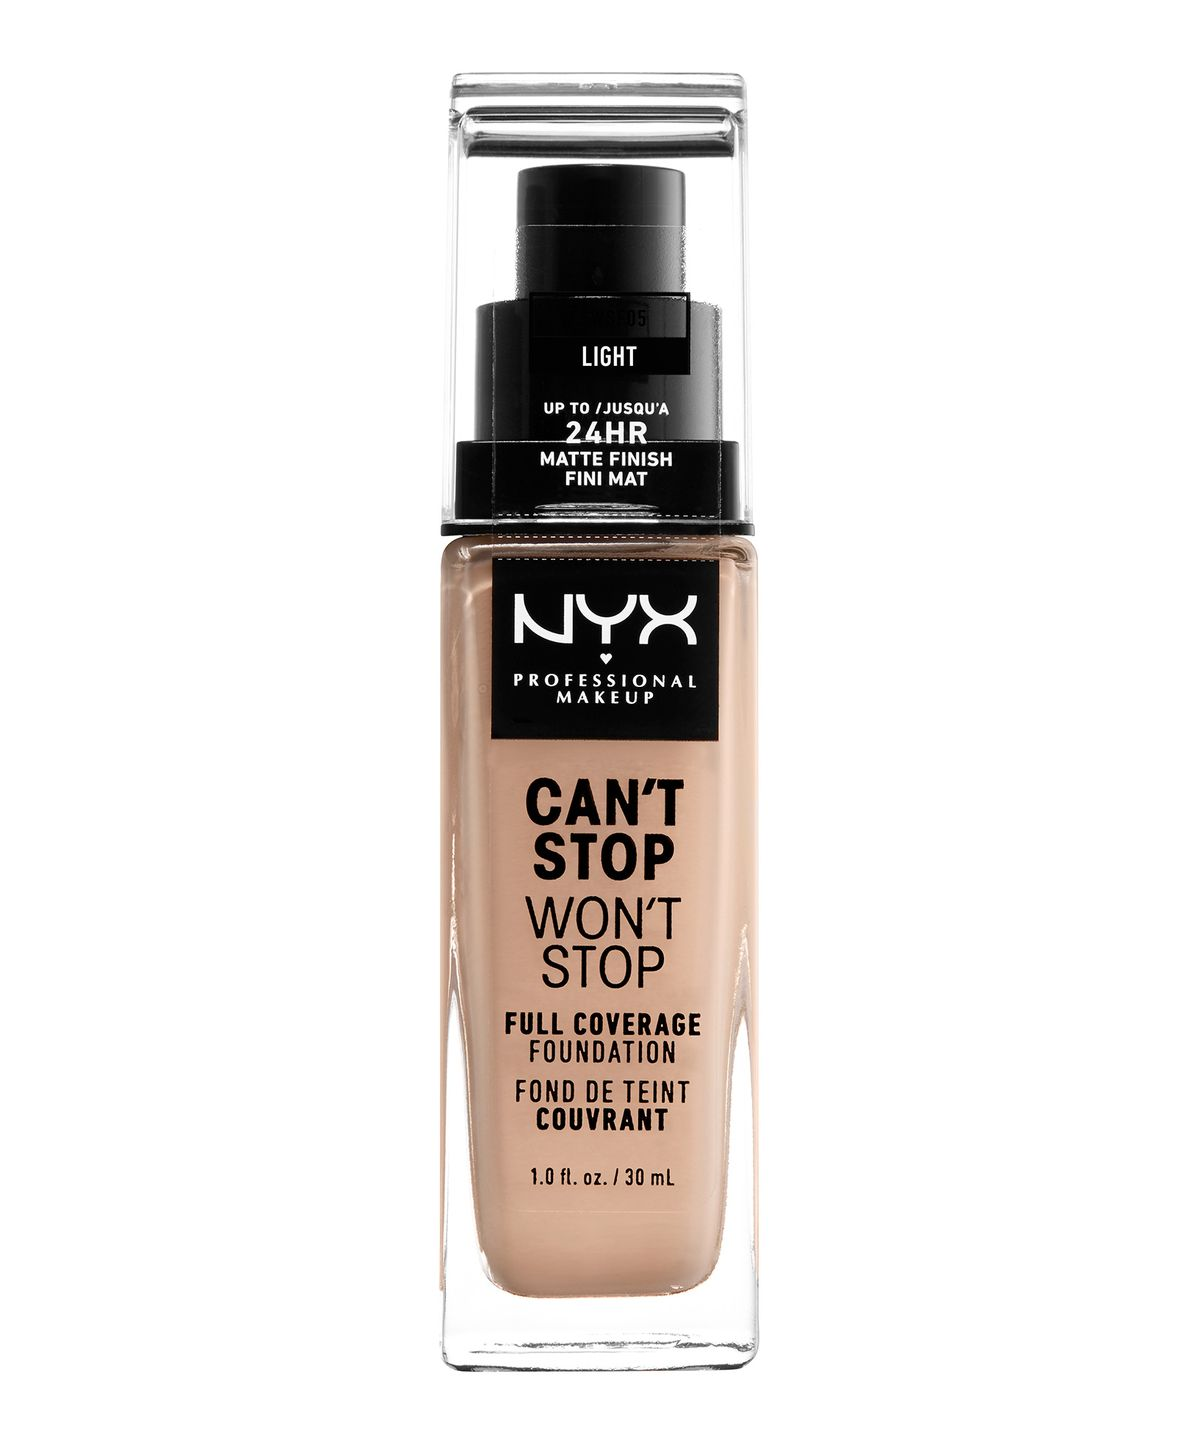 CANT STOP WONT STOP 24HR FOUNDATION LIGHT - NYX PROFESSIONAL MAKEUP